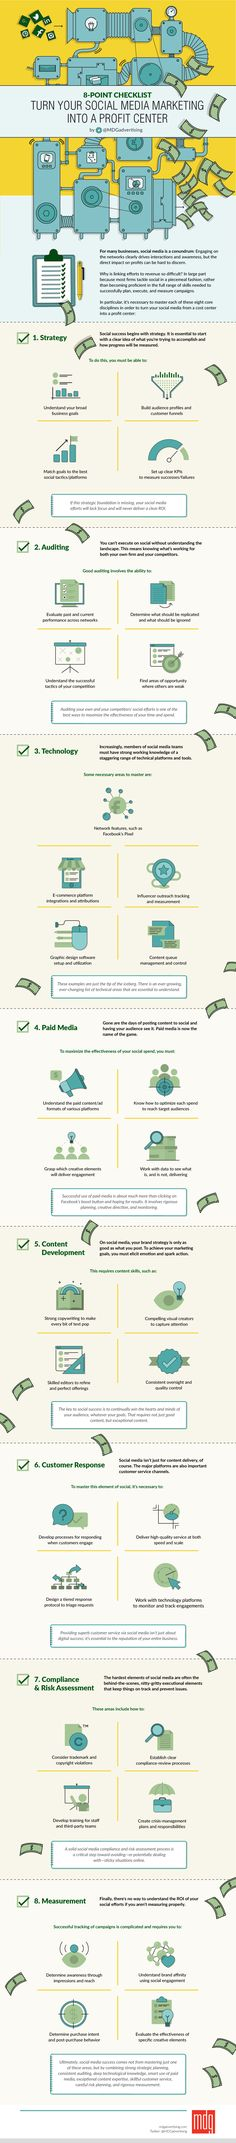 An 8-Point Checklist to Turn Your Social Media Marketing into a Profit Center [Infographic] | Social Media Today